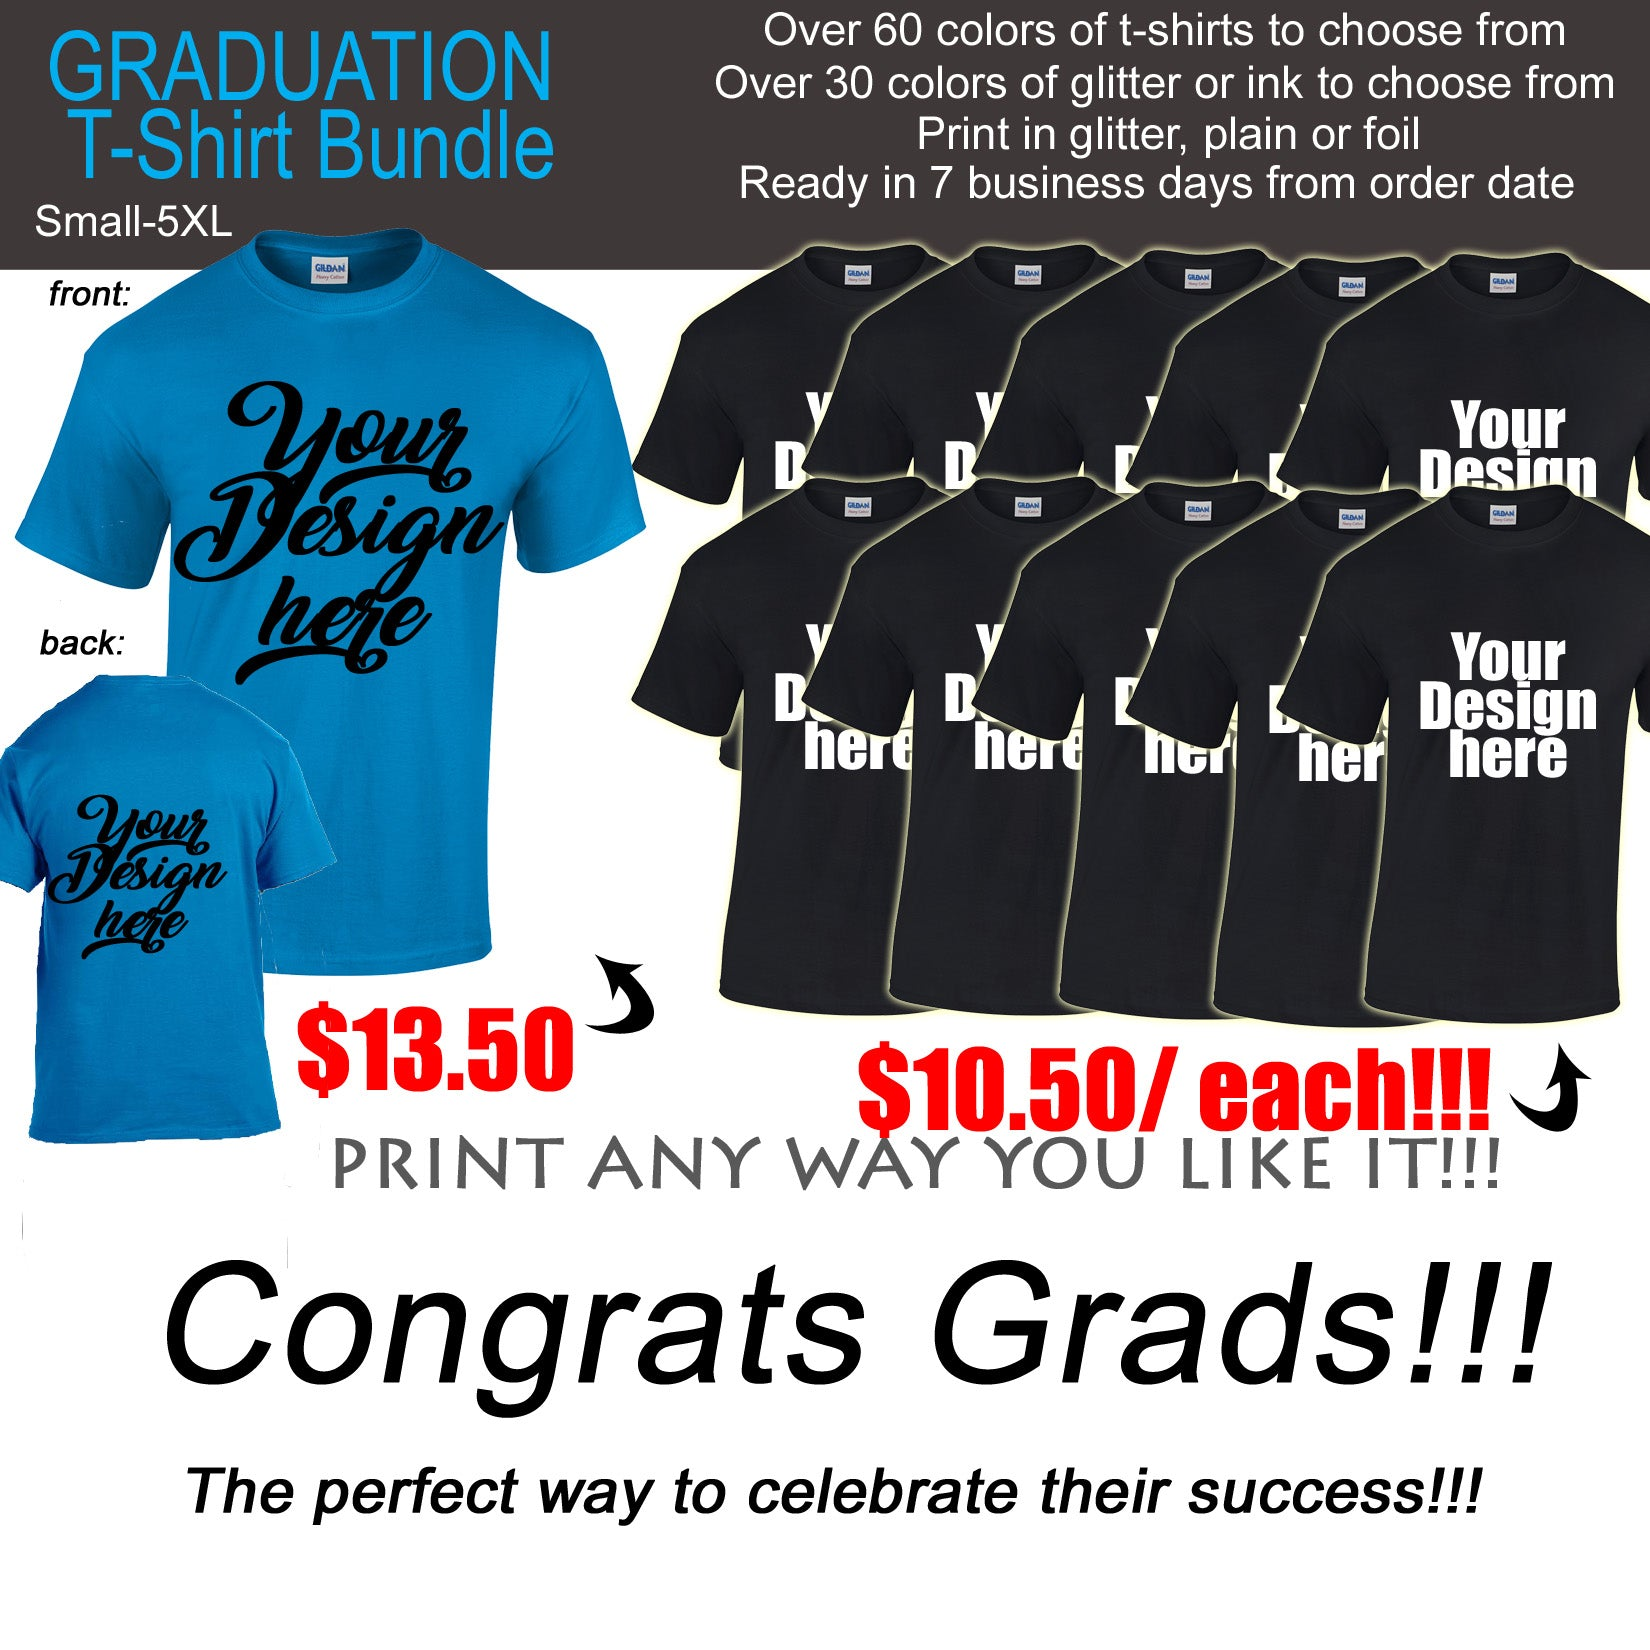 Graduation Bundle Deal